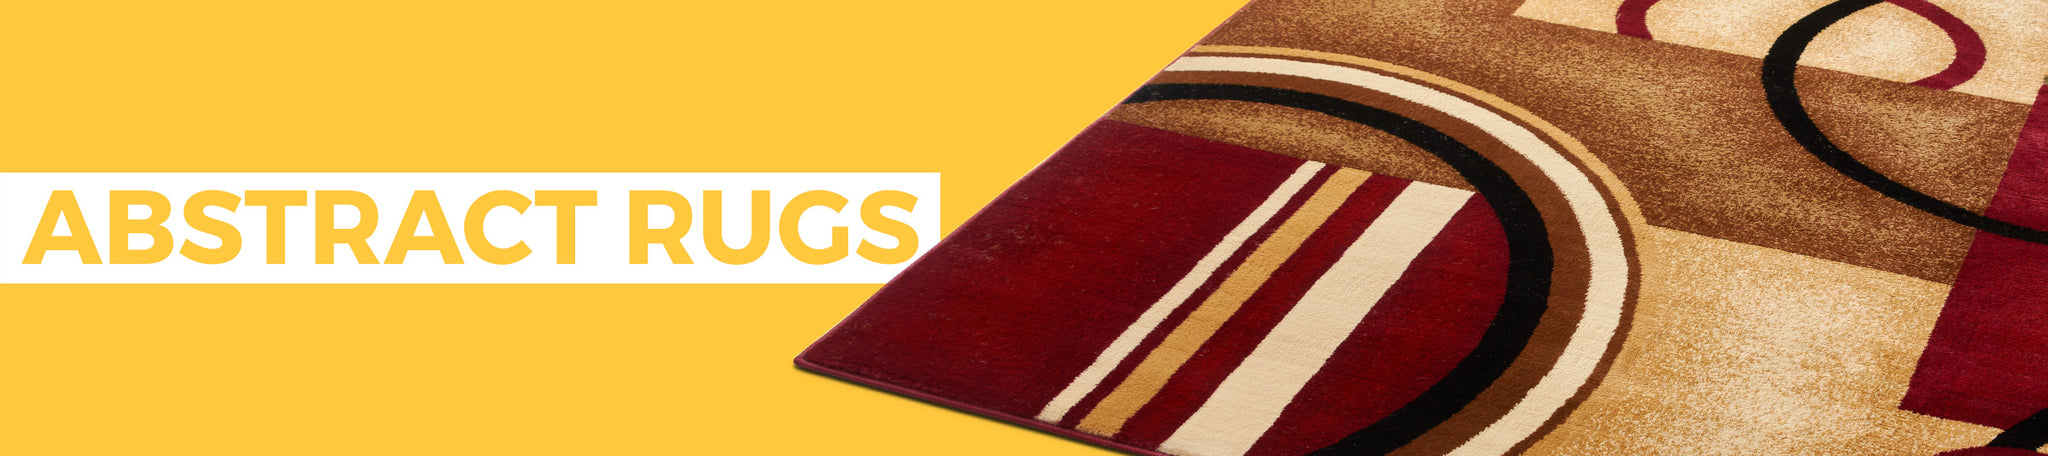 Abstract Rugs Collection from Well Woven